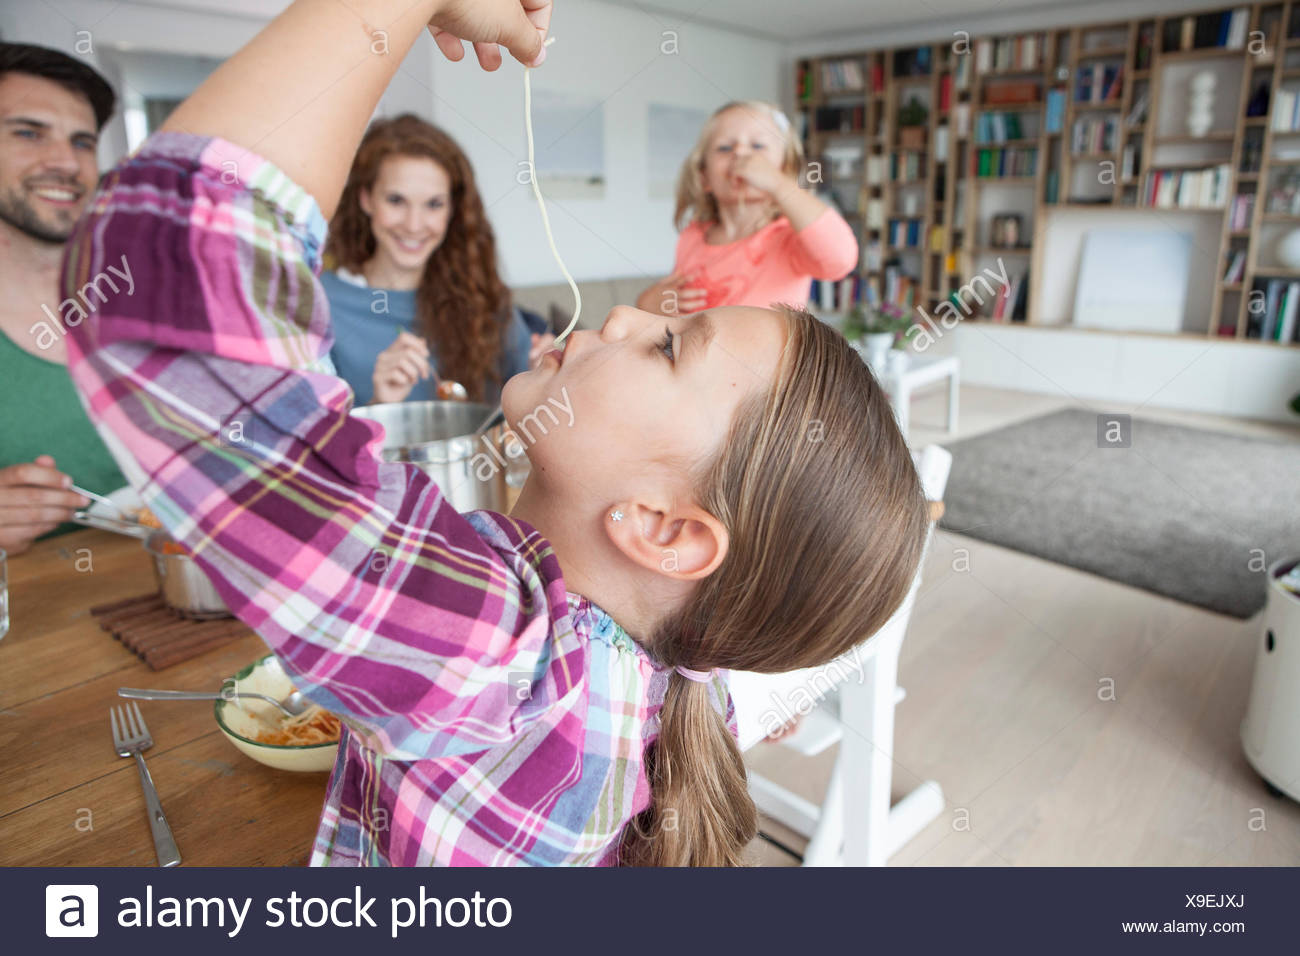 Little girl eating spaghetti while her parents and sister watching her - Stock Image